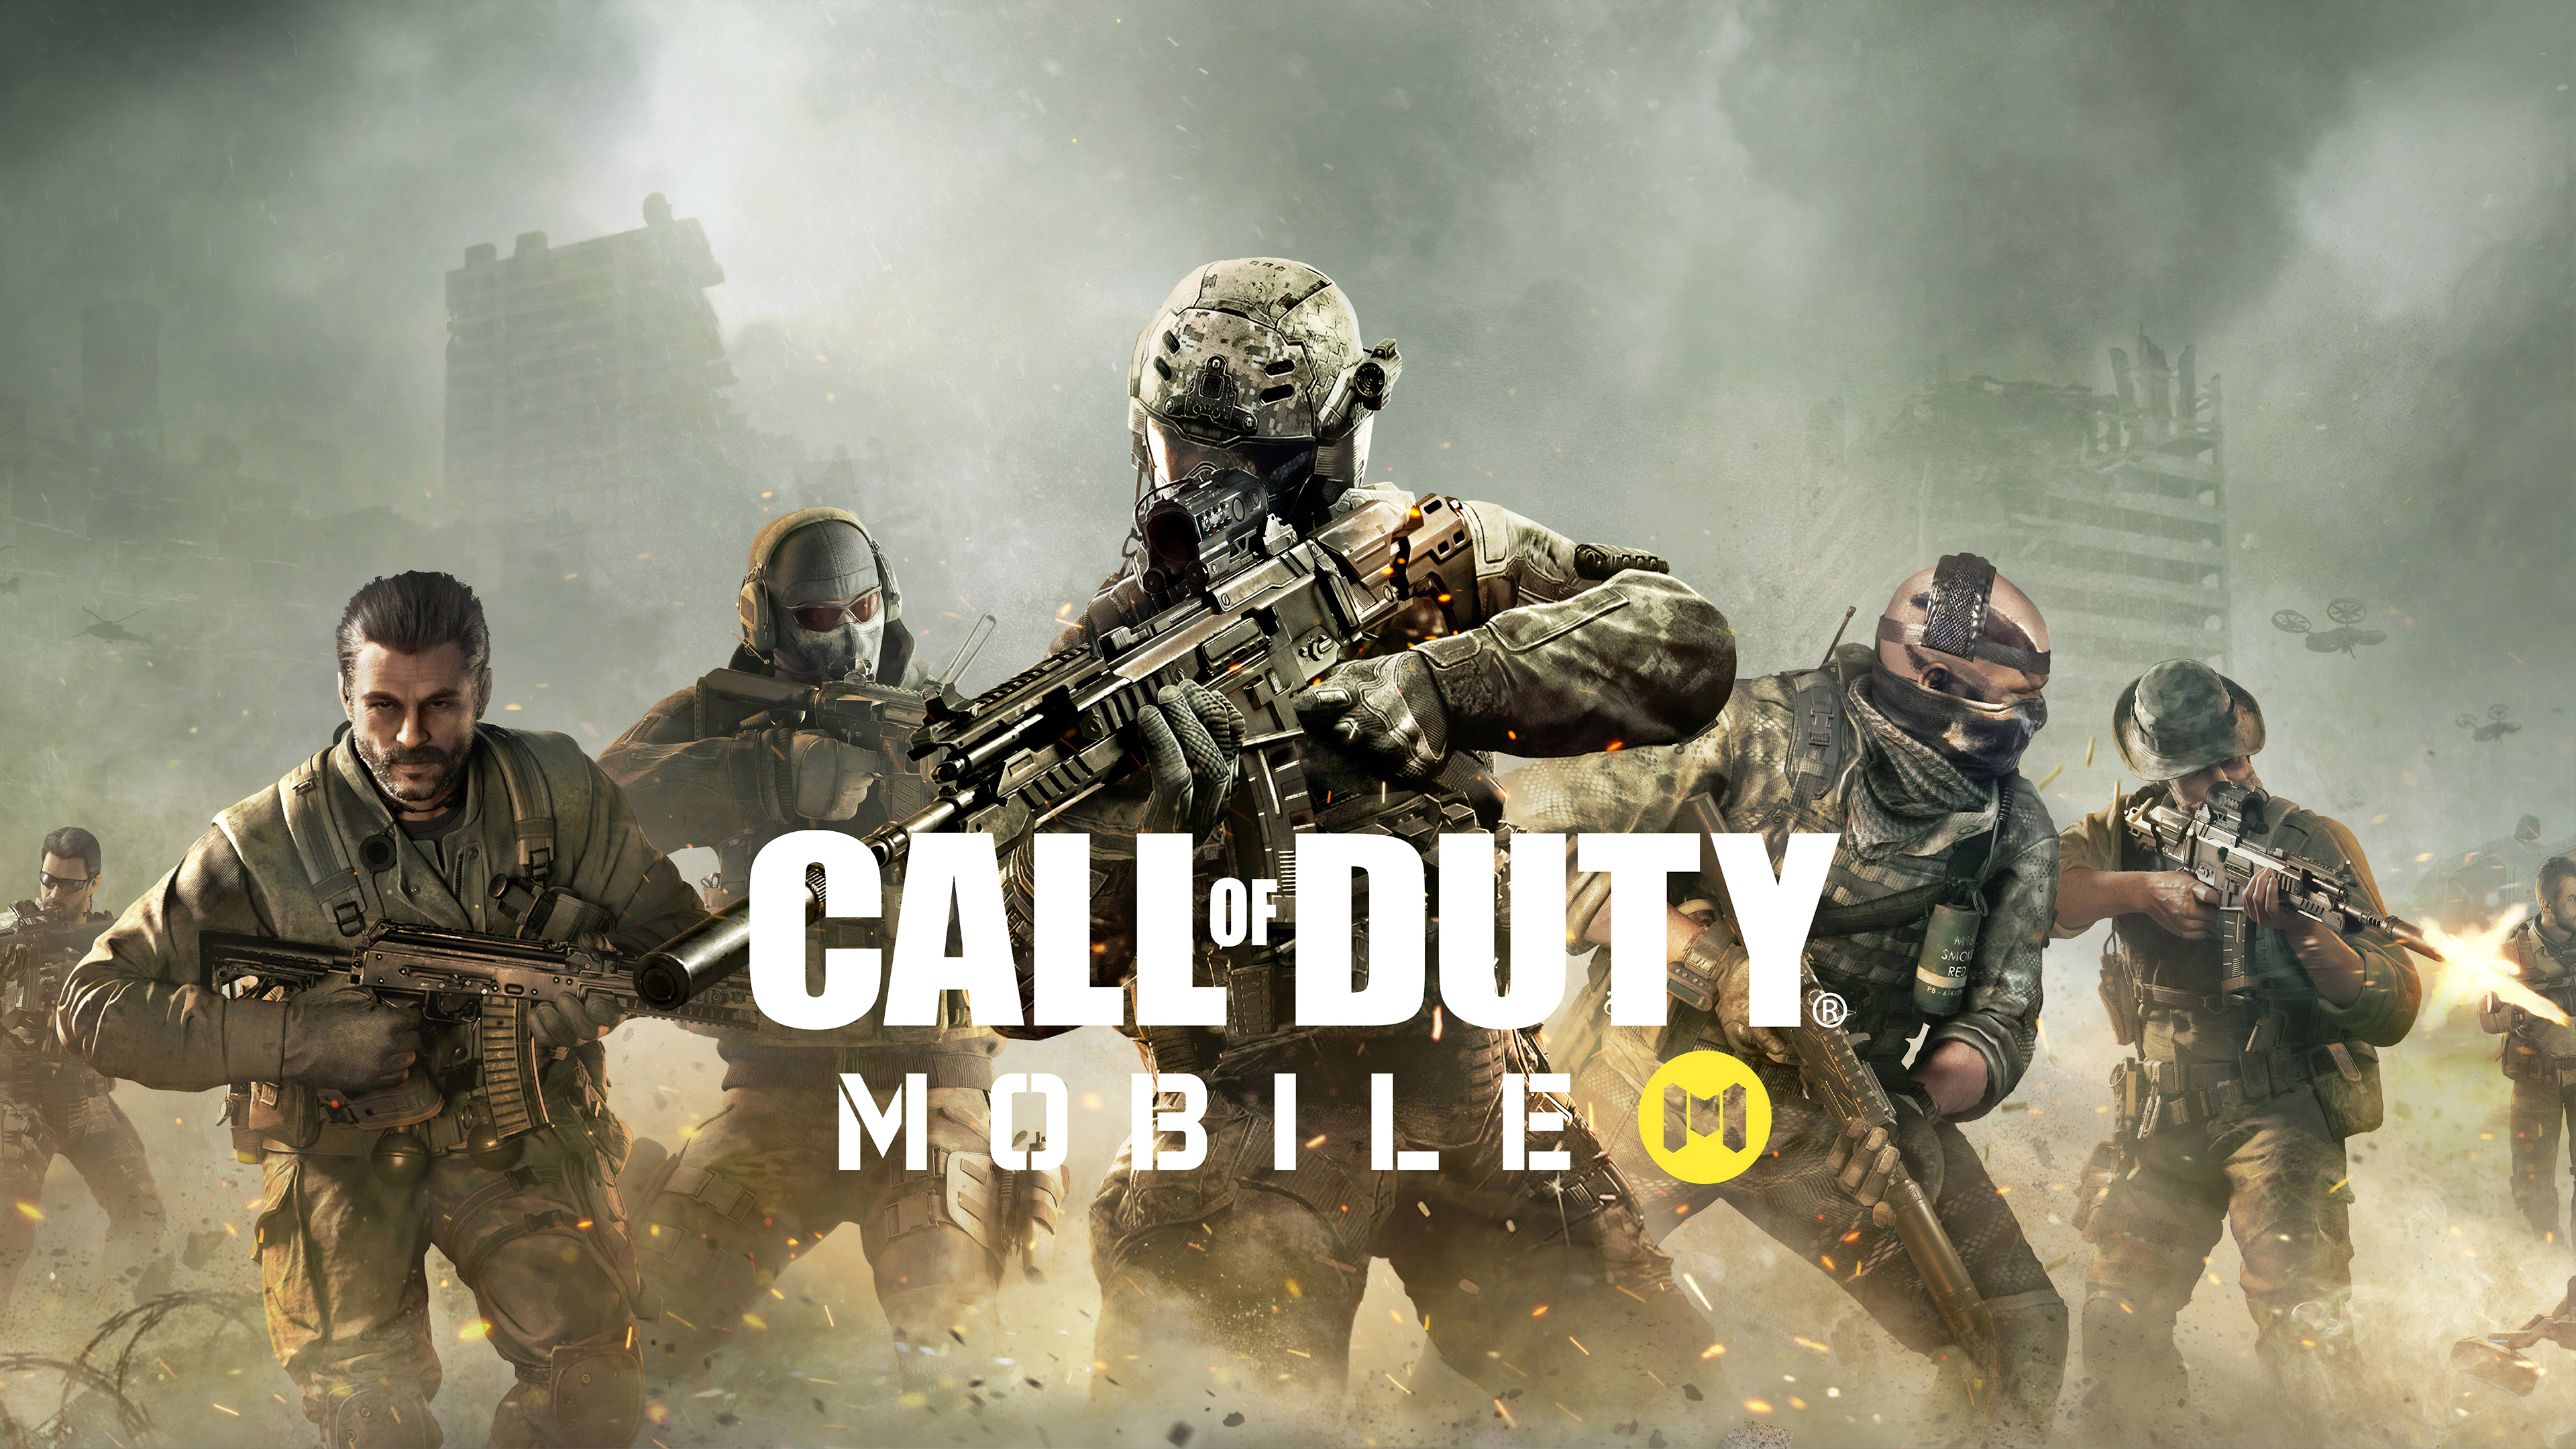 Call Of Duty Mobile Hd Games 4k Wallpapers Images